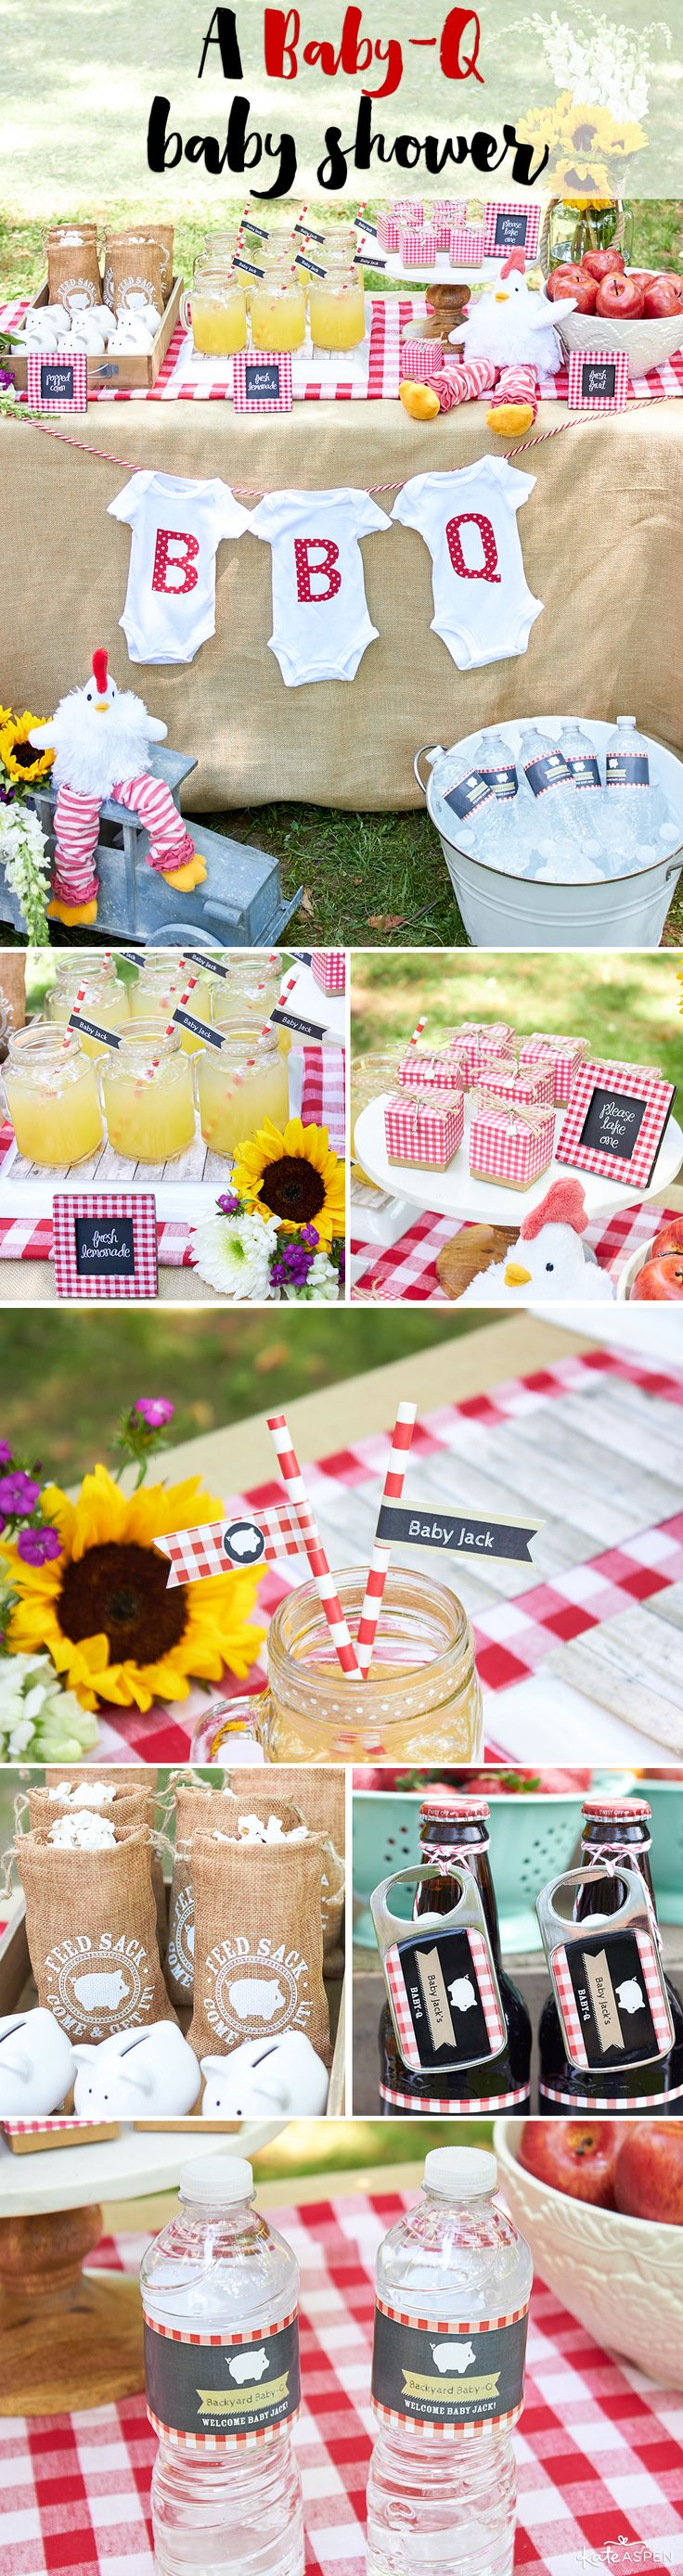 Warmer days are here, and what better reason to throw a BBQ than to celebrate the new baby on-the-way? A Baby-Q barbecue baby shower is the perfect theme for a laid-back co-ed shower!